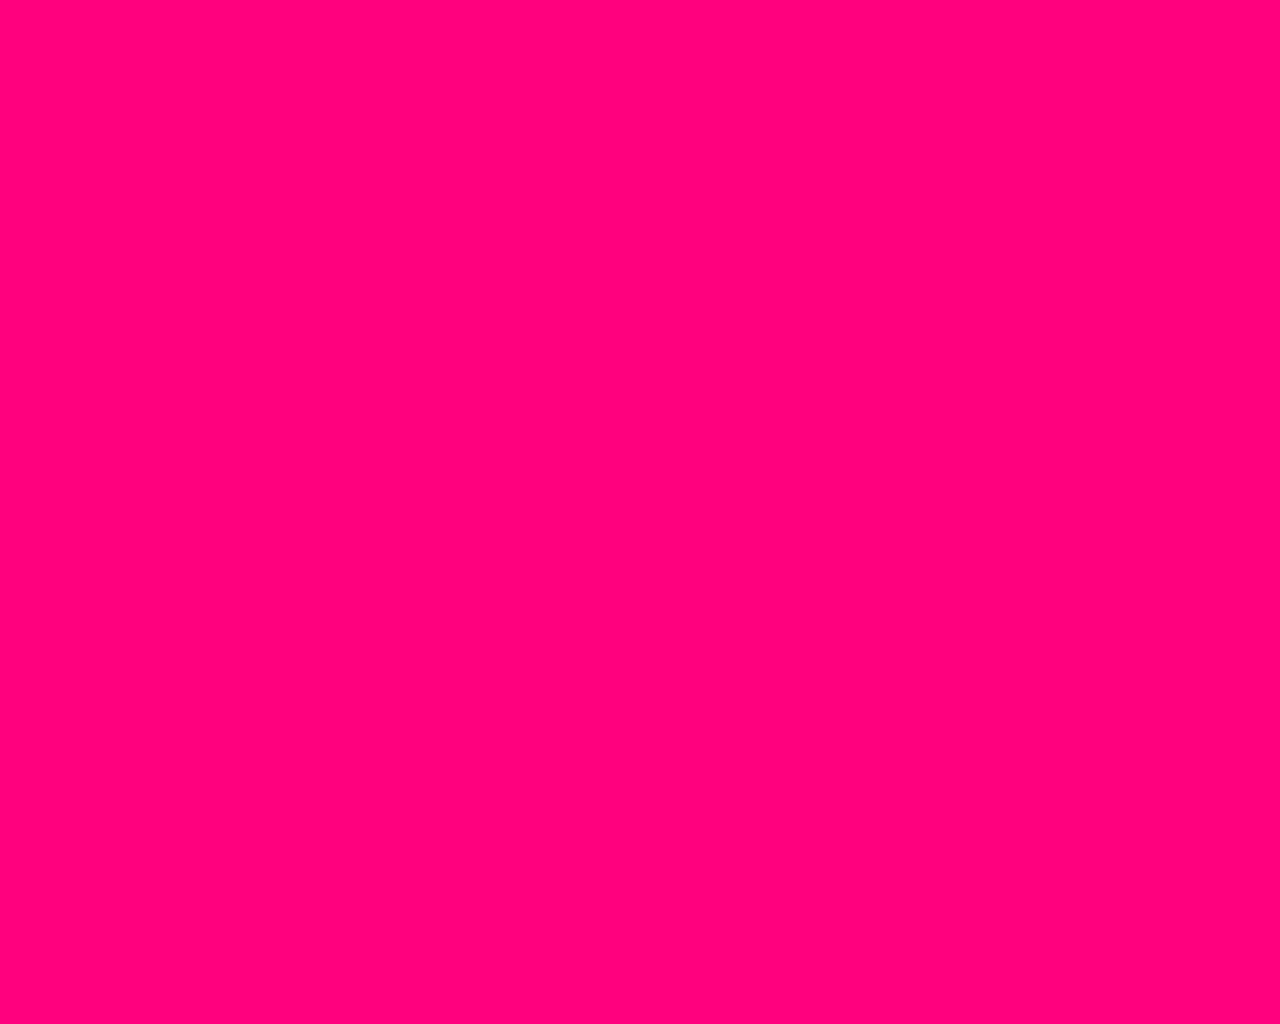 1280x1024 resolution Bright Pink solid color background view and 1280x1024